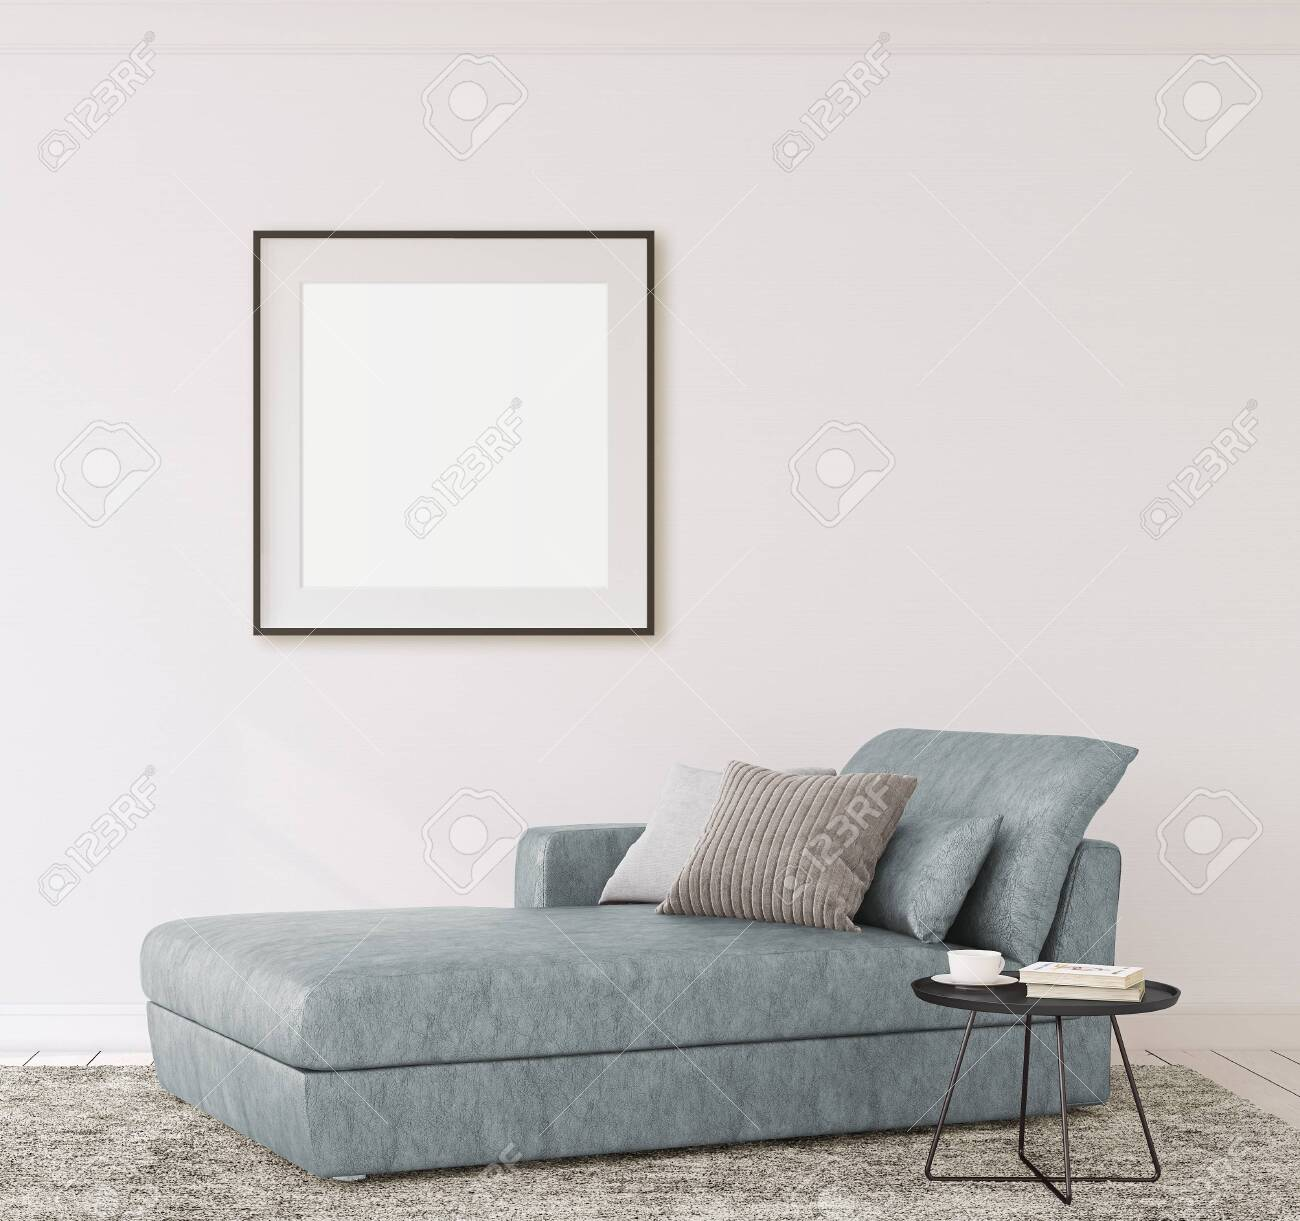 Interior and frame mockup. Modern couch near empty white wall. 3d render. - 118411784